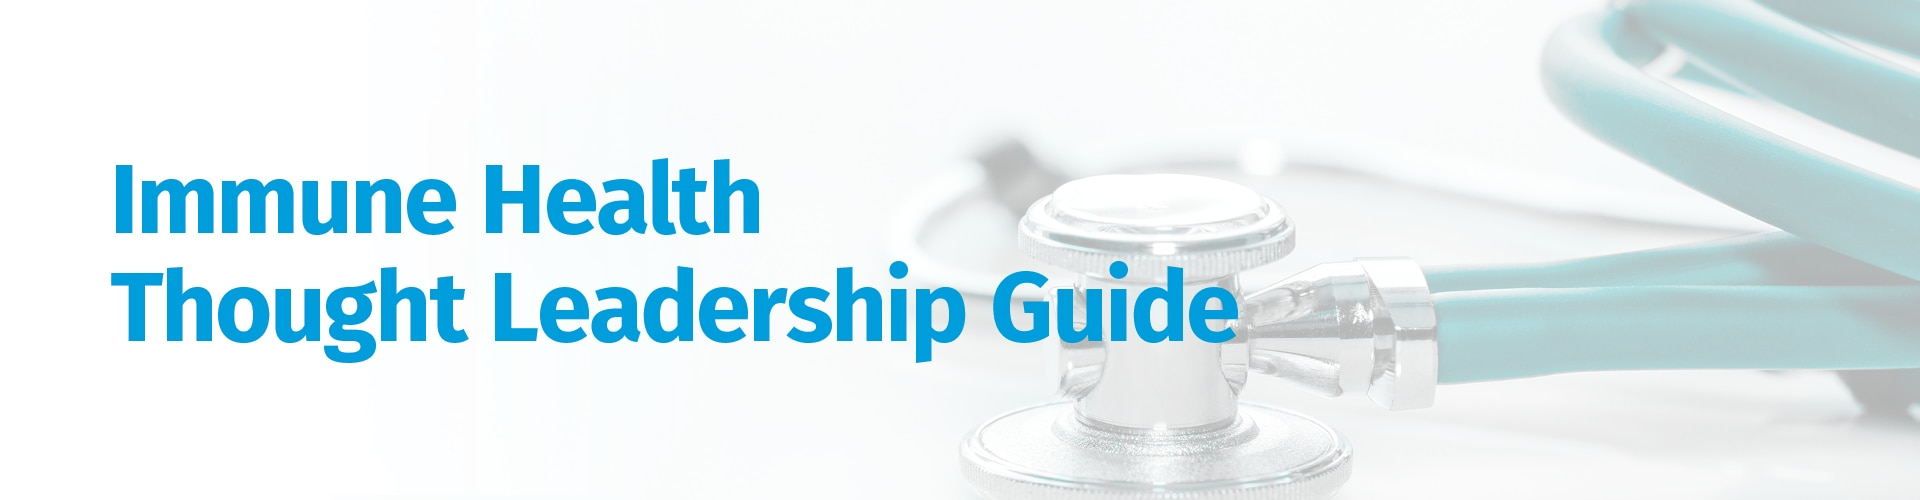 Immune Health Thought Leadership Guide banner